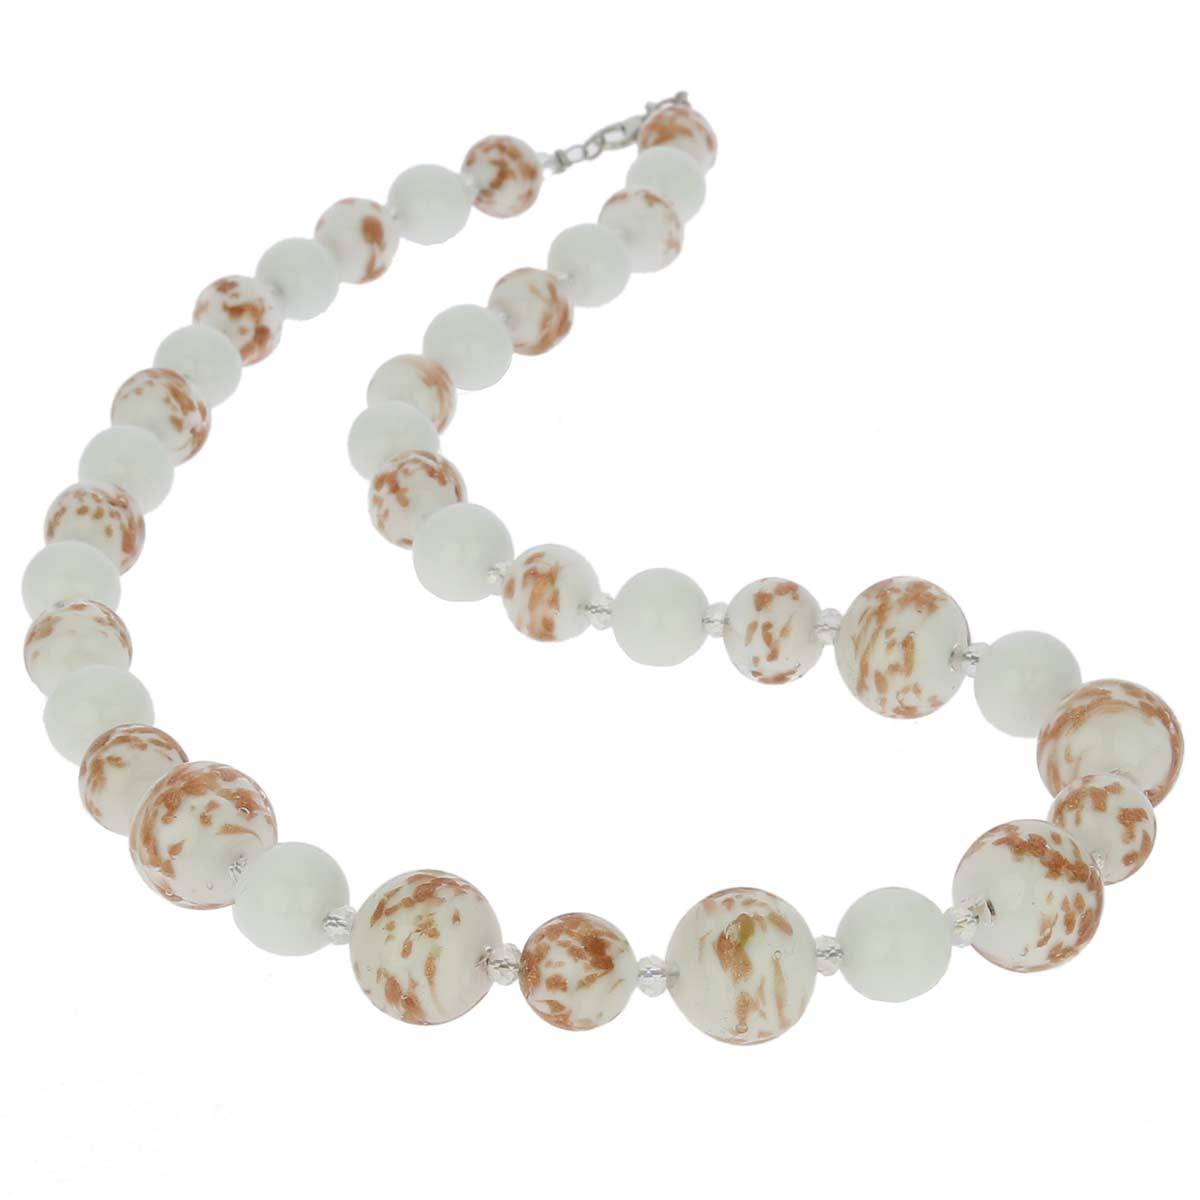 Starlight Murano Necklace - White